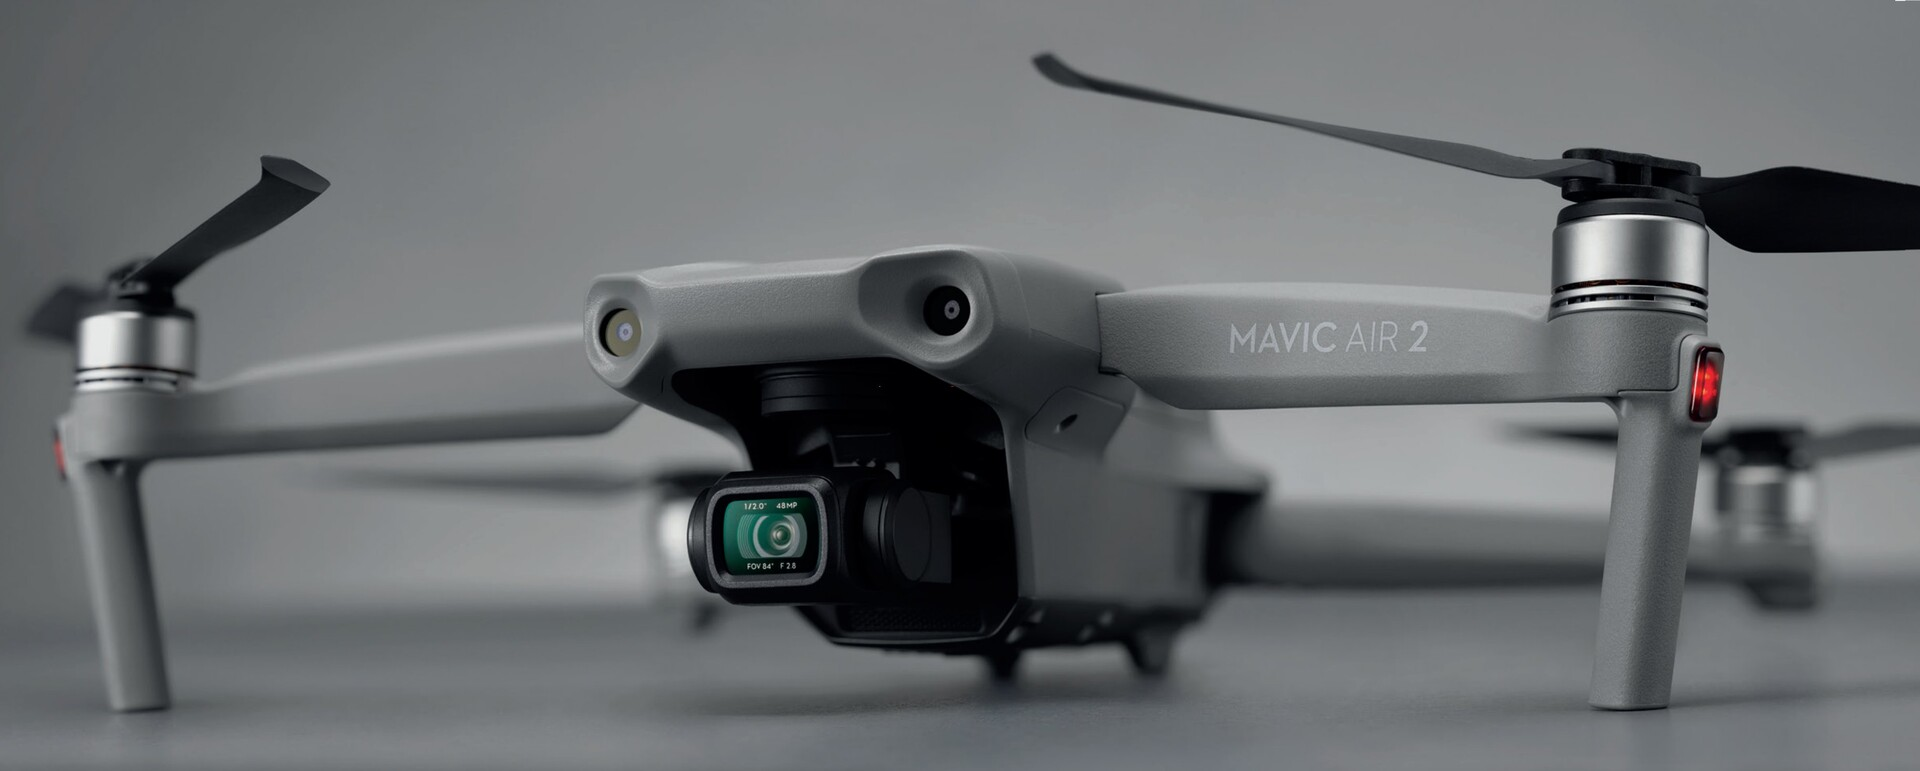 Dji Mavic Air 2 Official Images Of The New Drone And Accessories Leak Ahead Of Imminent Release Notebookcheck Net News